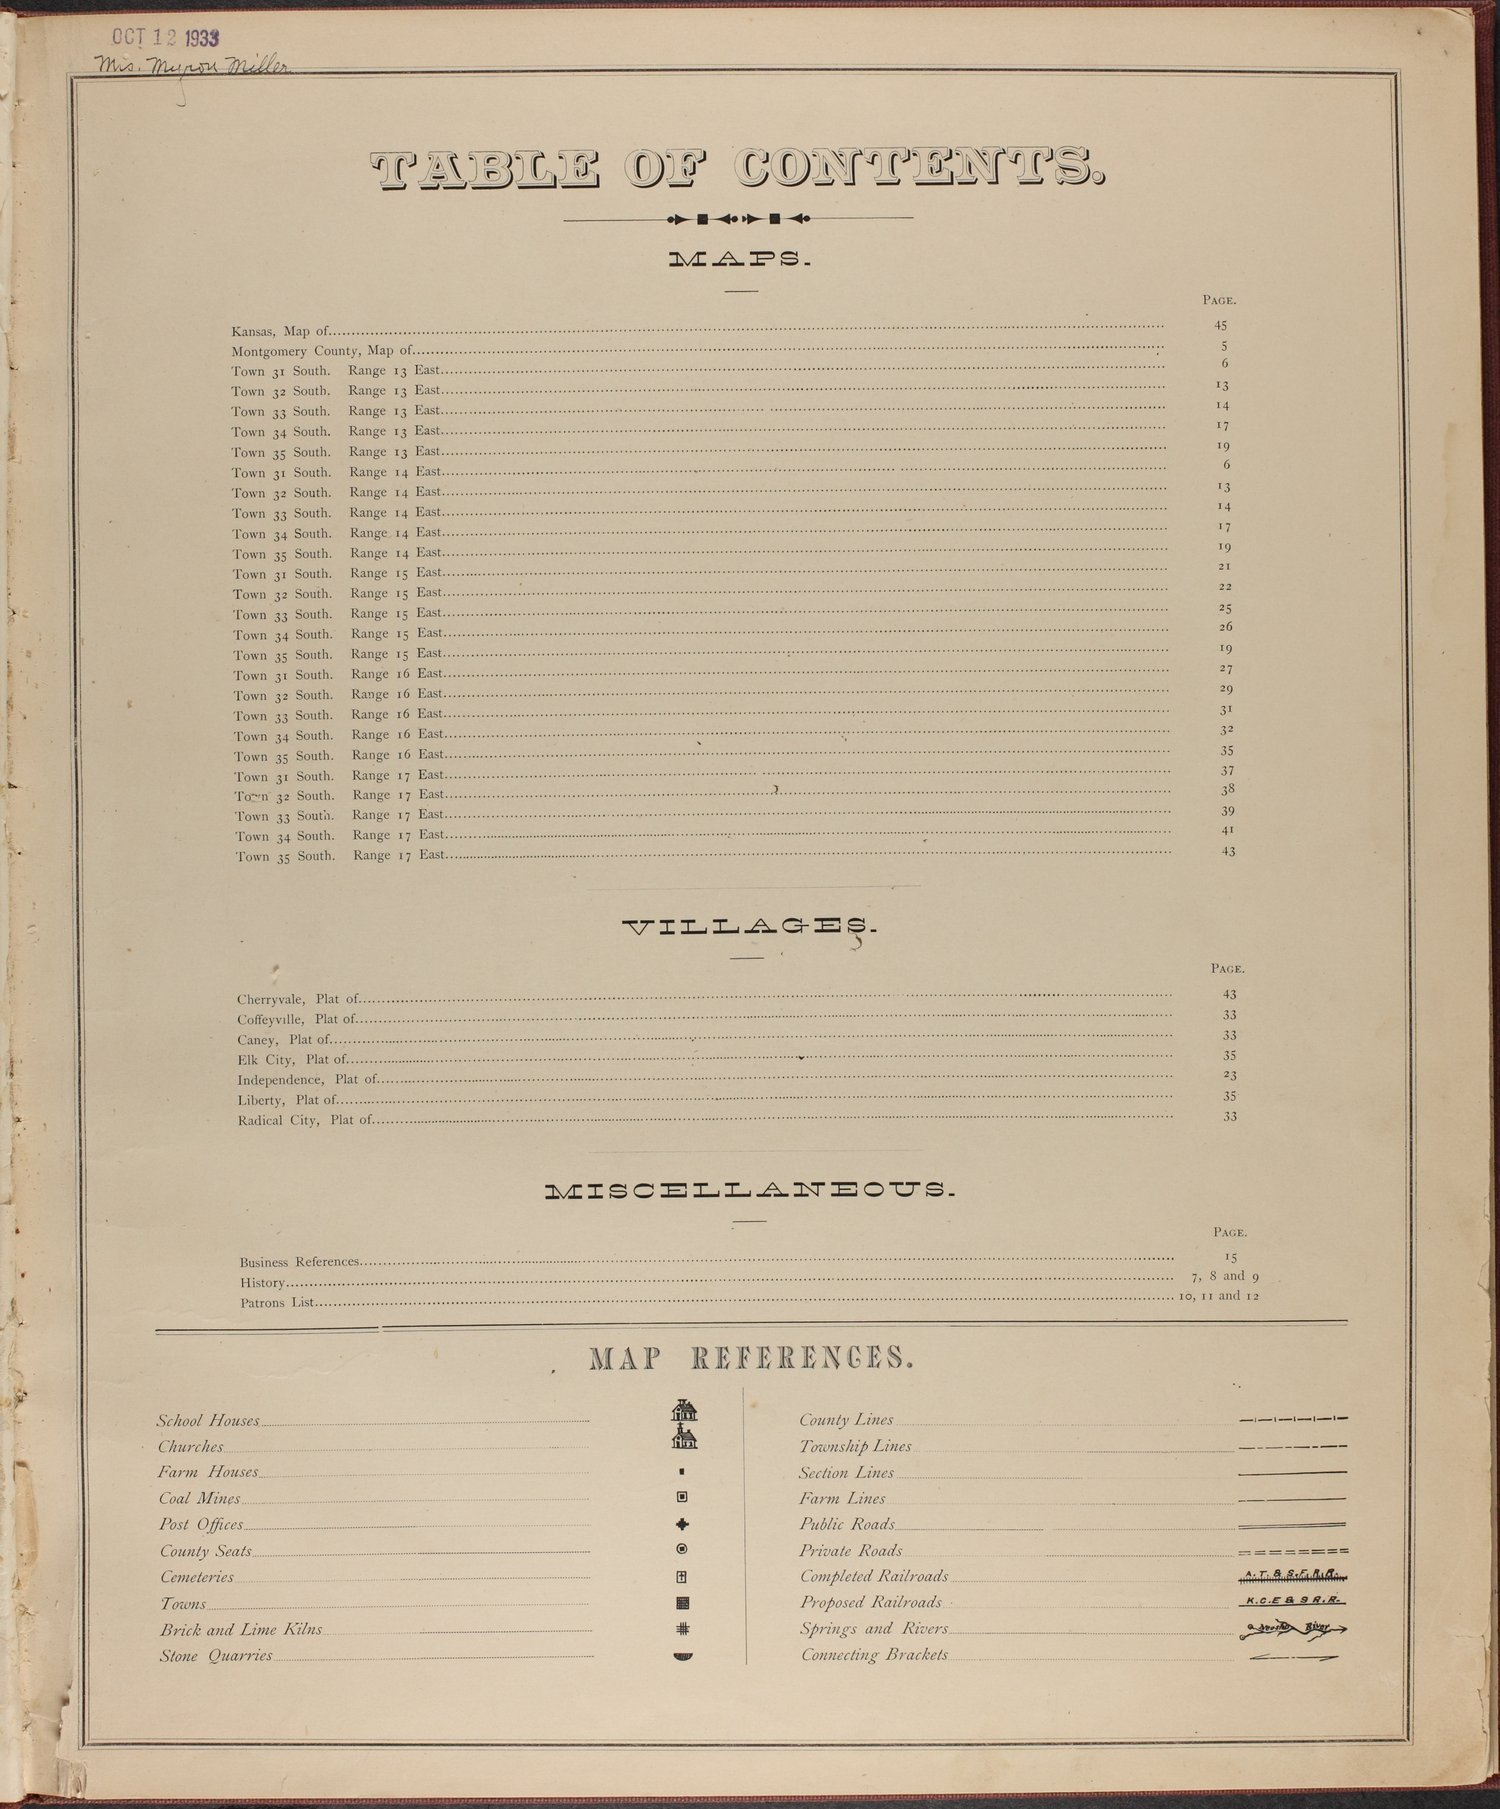 Historical atlas of Montgomery County, Kansas - Table of Contents